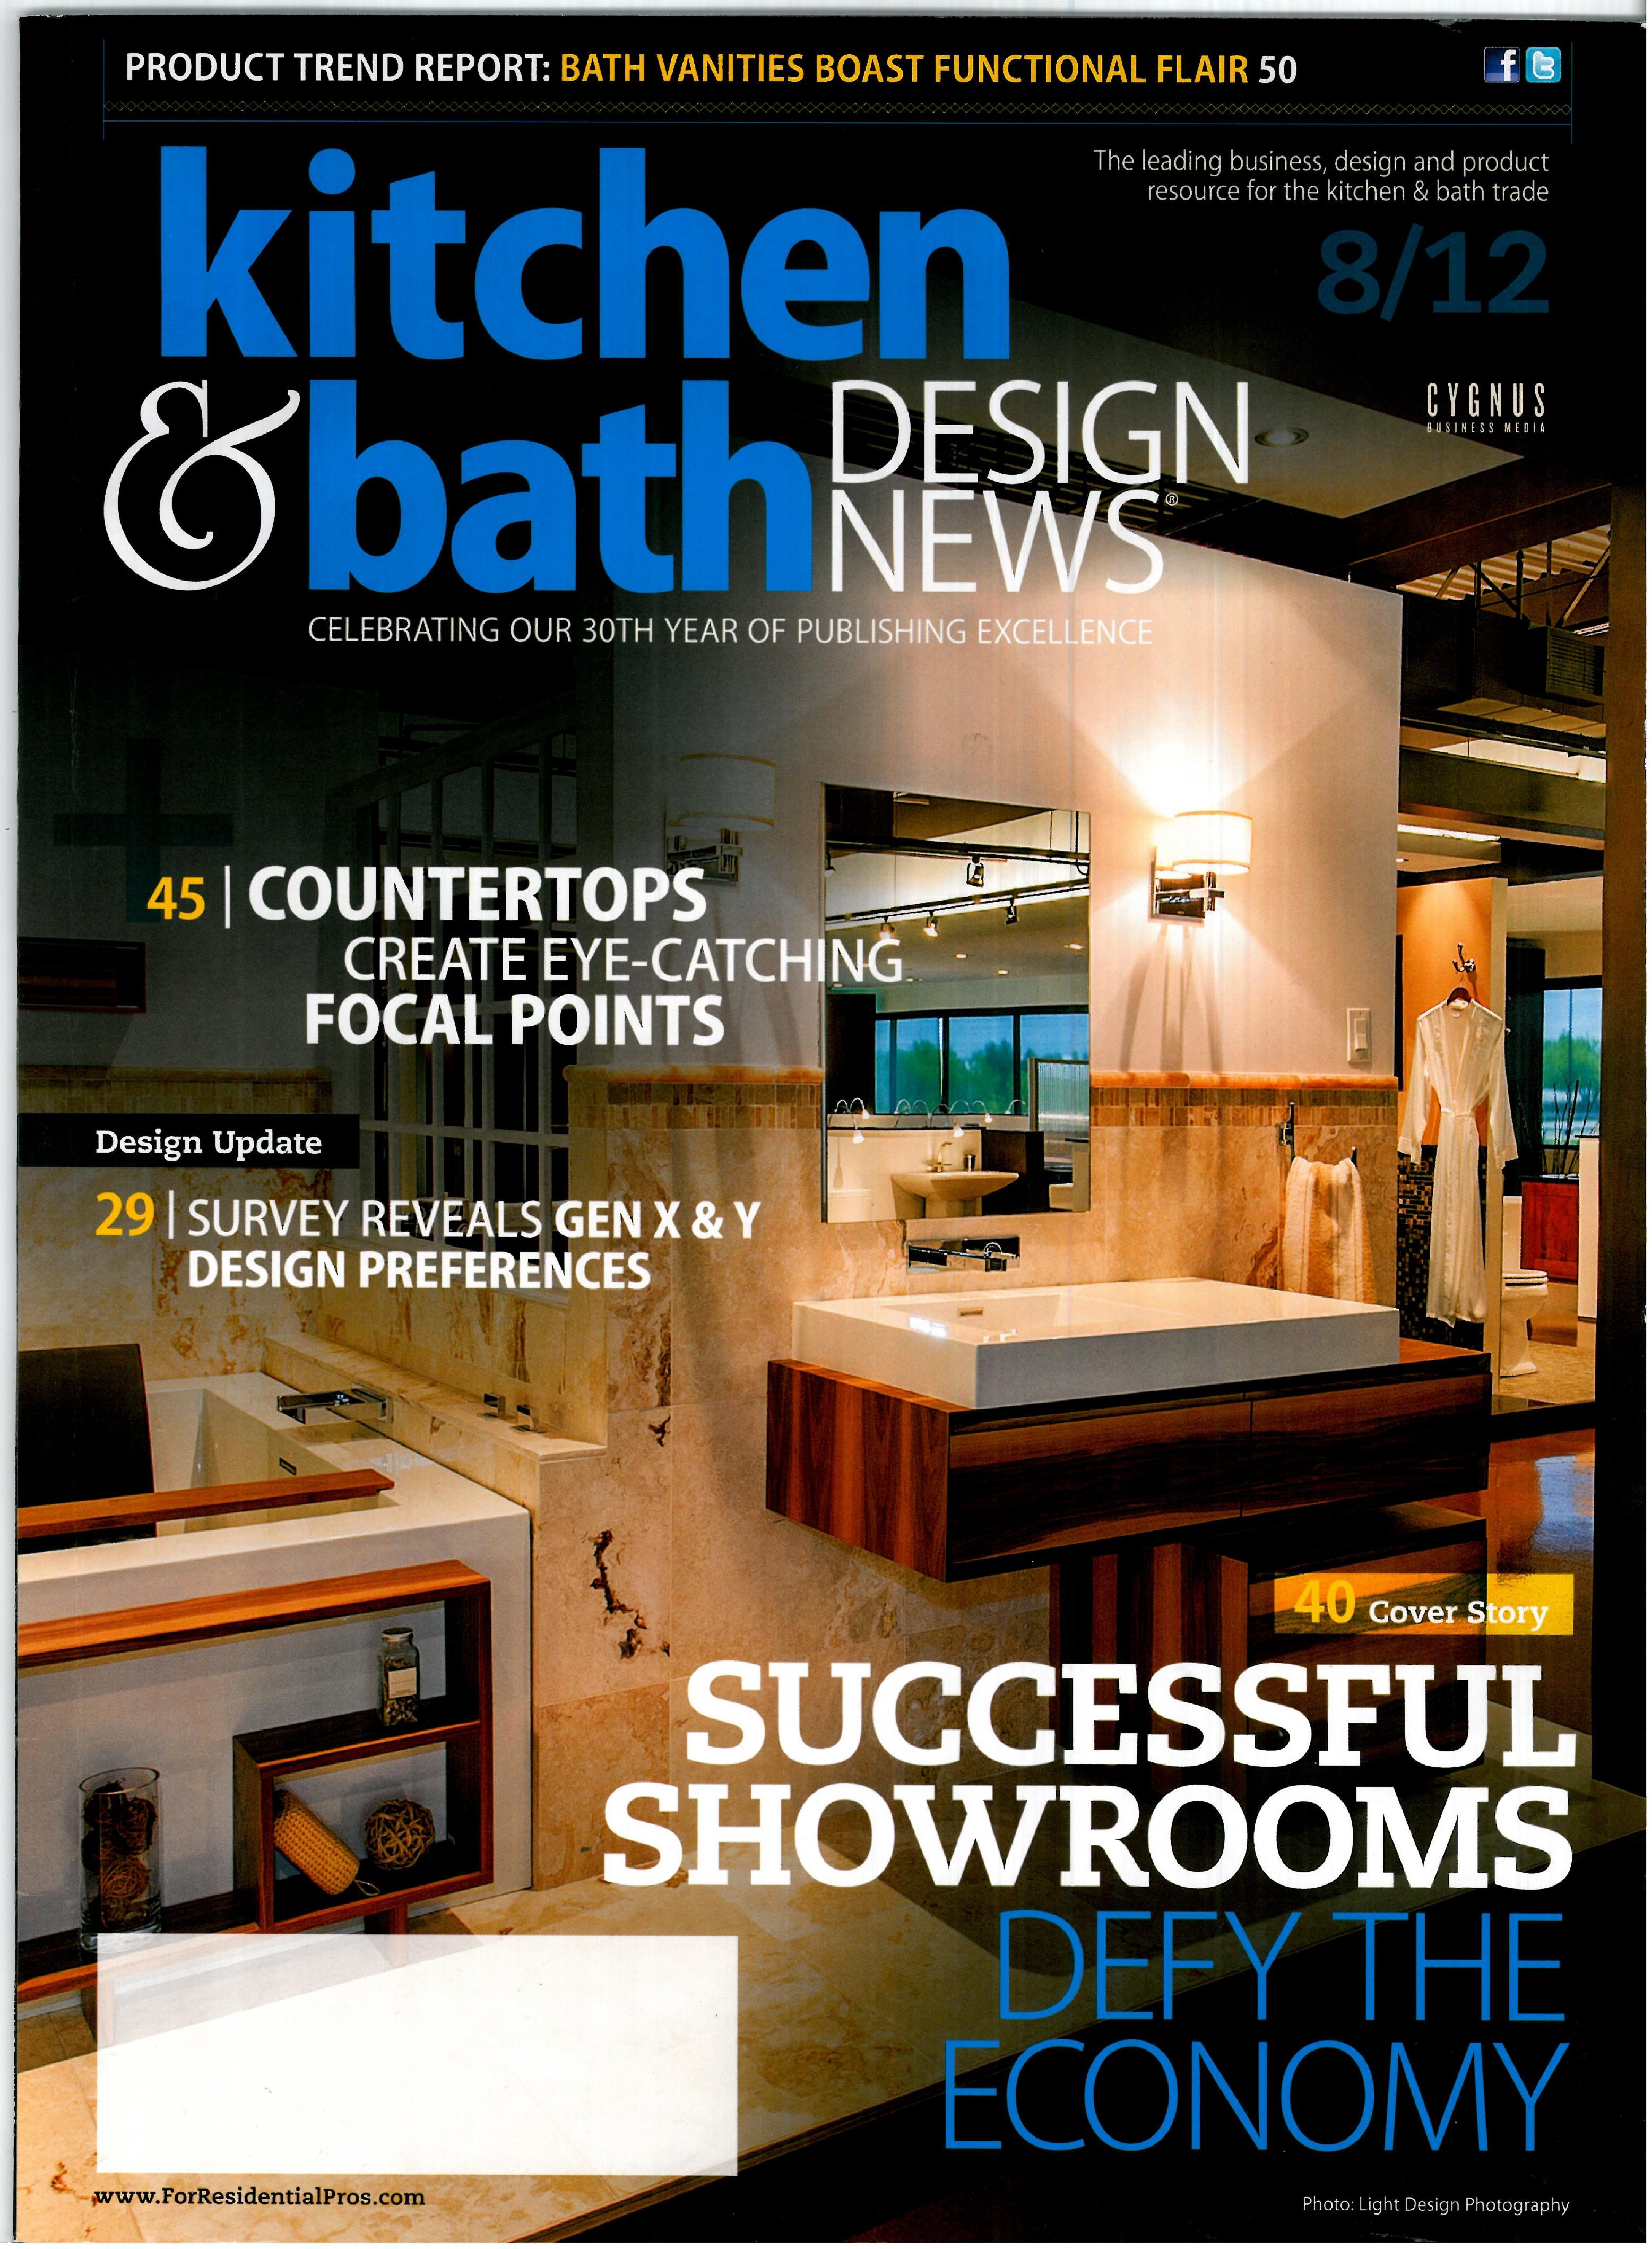 Kitchen and Bath Design News 8/12